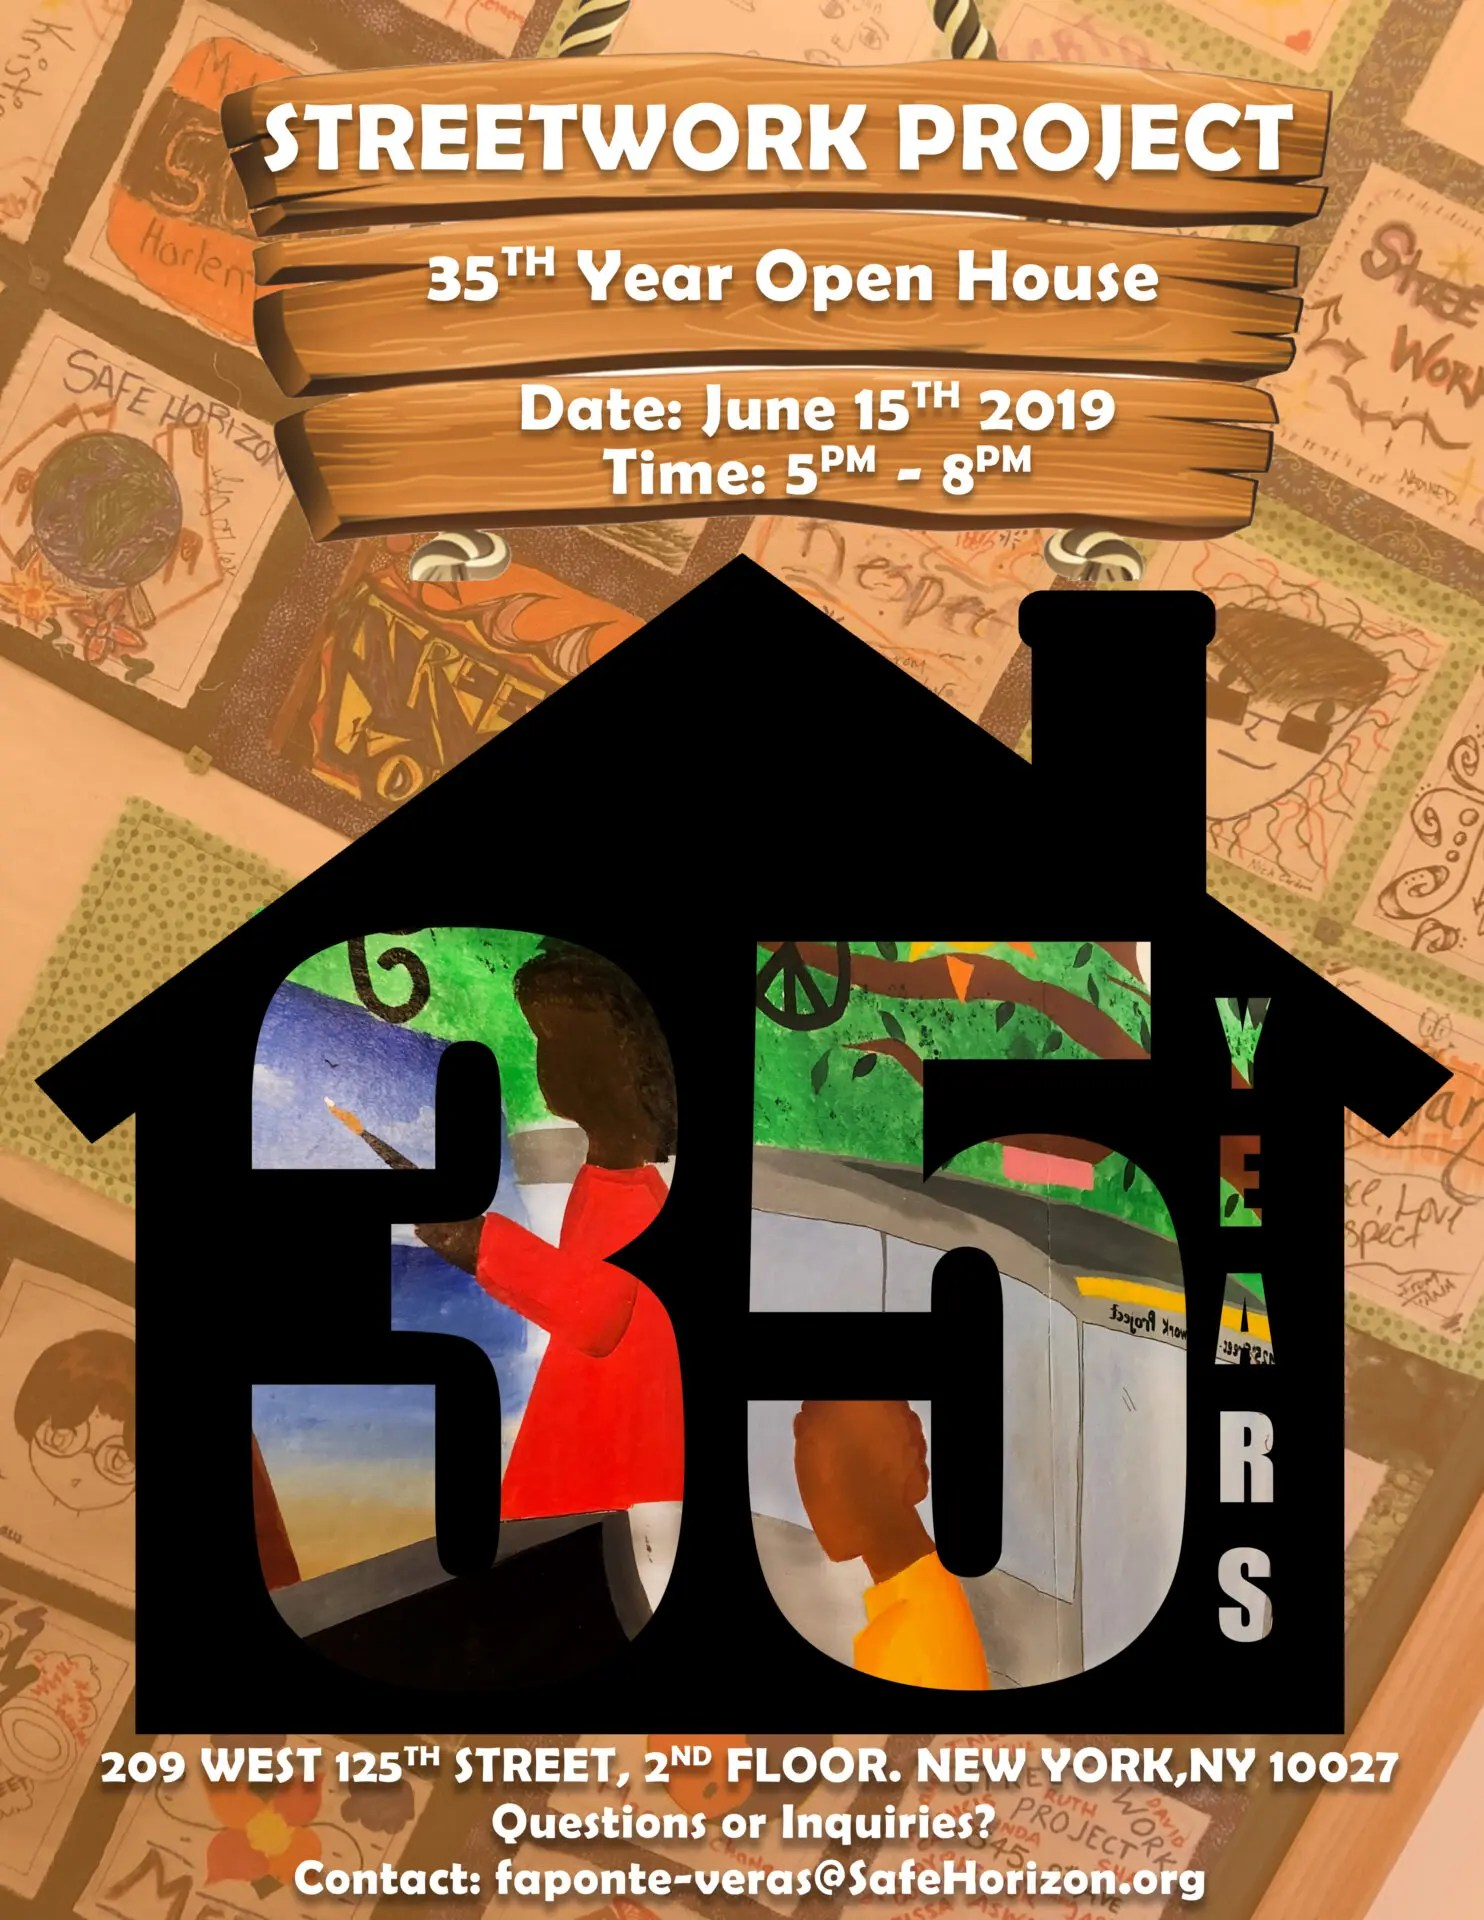 Streetwork Project 35th Year Open House